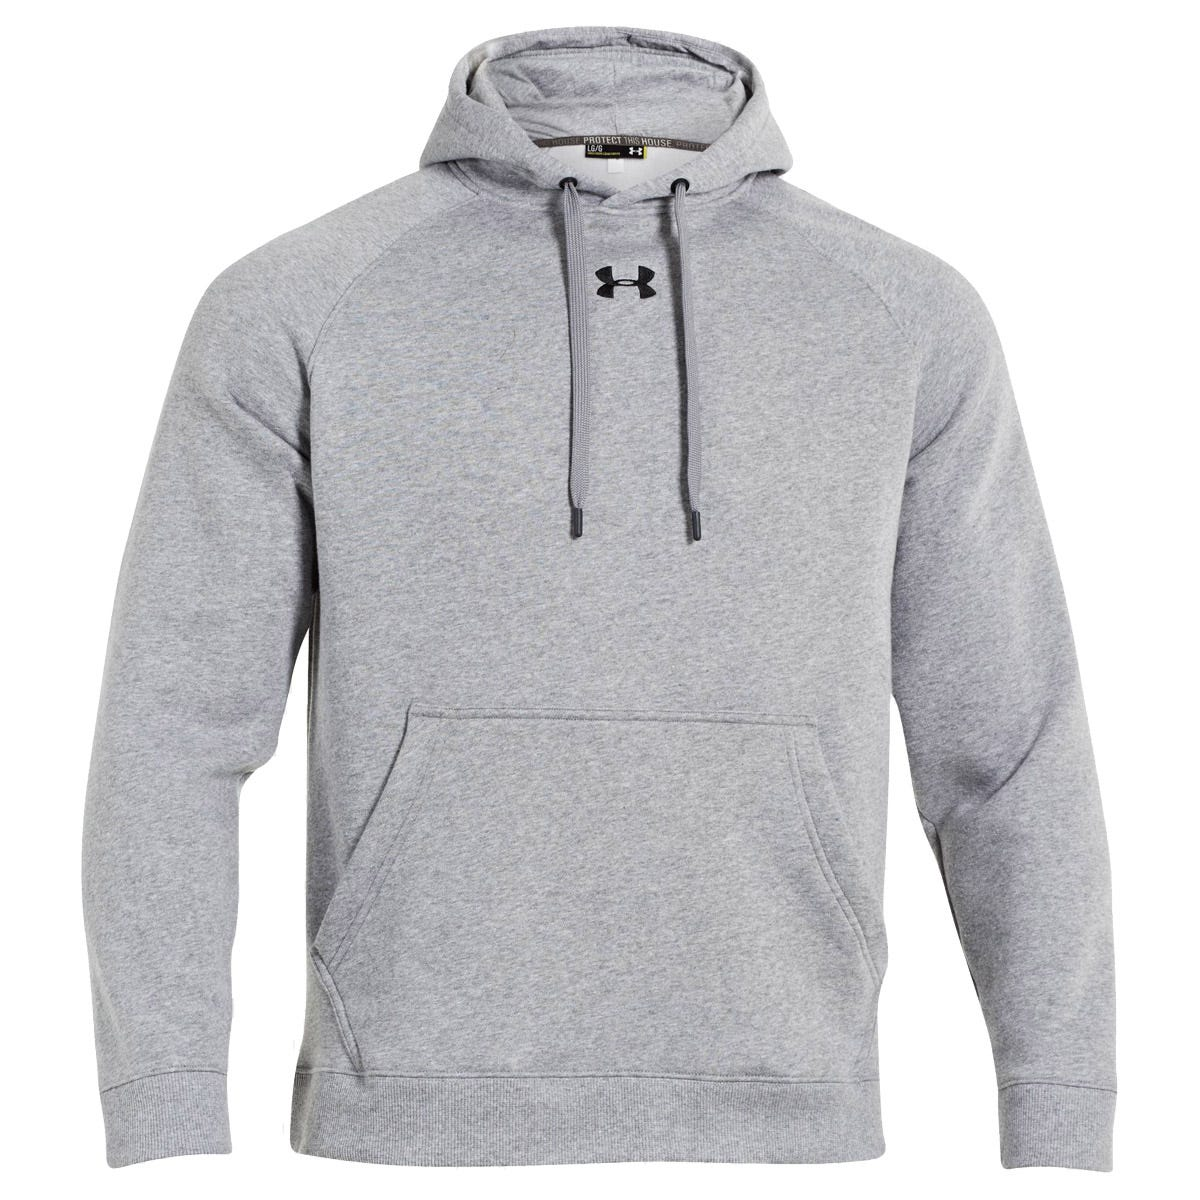 Under Armour Rival Fleece Senior Pullover Hoody